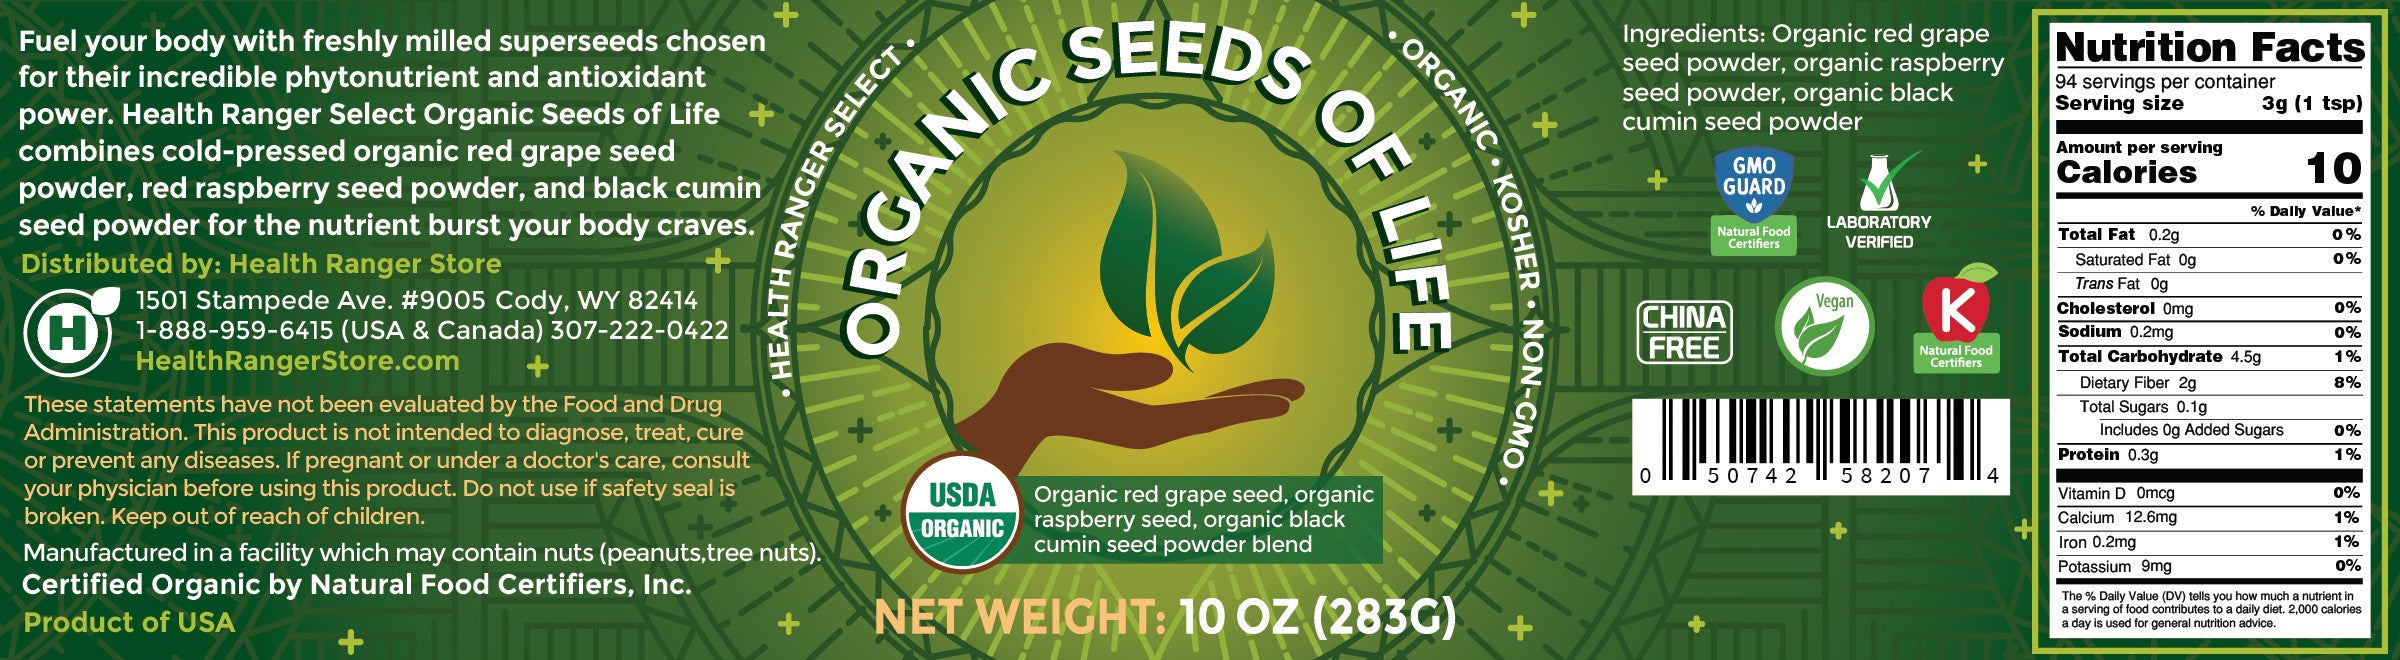 Organic Seeds of Life - Cold Pressed - 10oz (283g) (6-Pack)